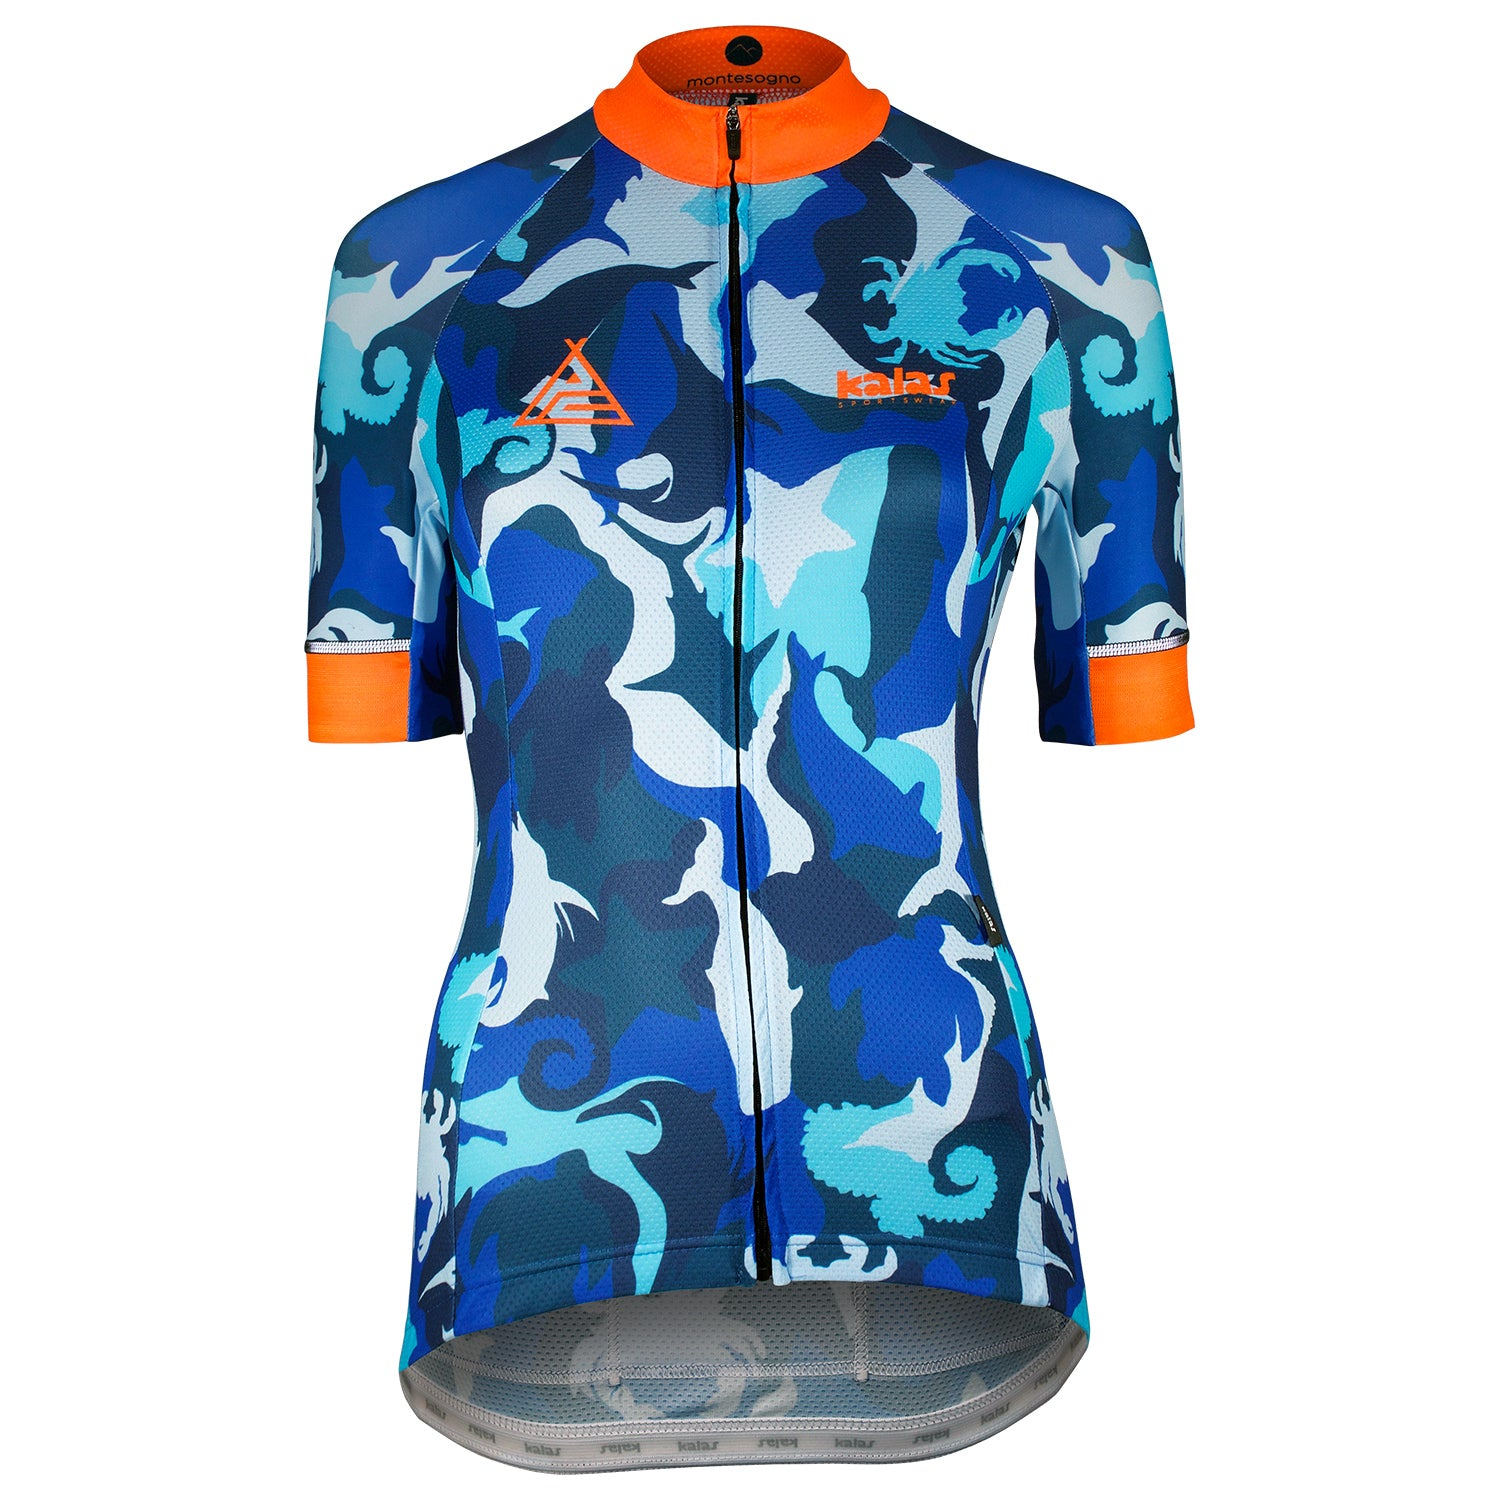 Prendas x Montesogno - Womens Sea Animage Jersey